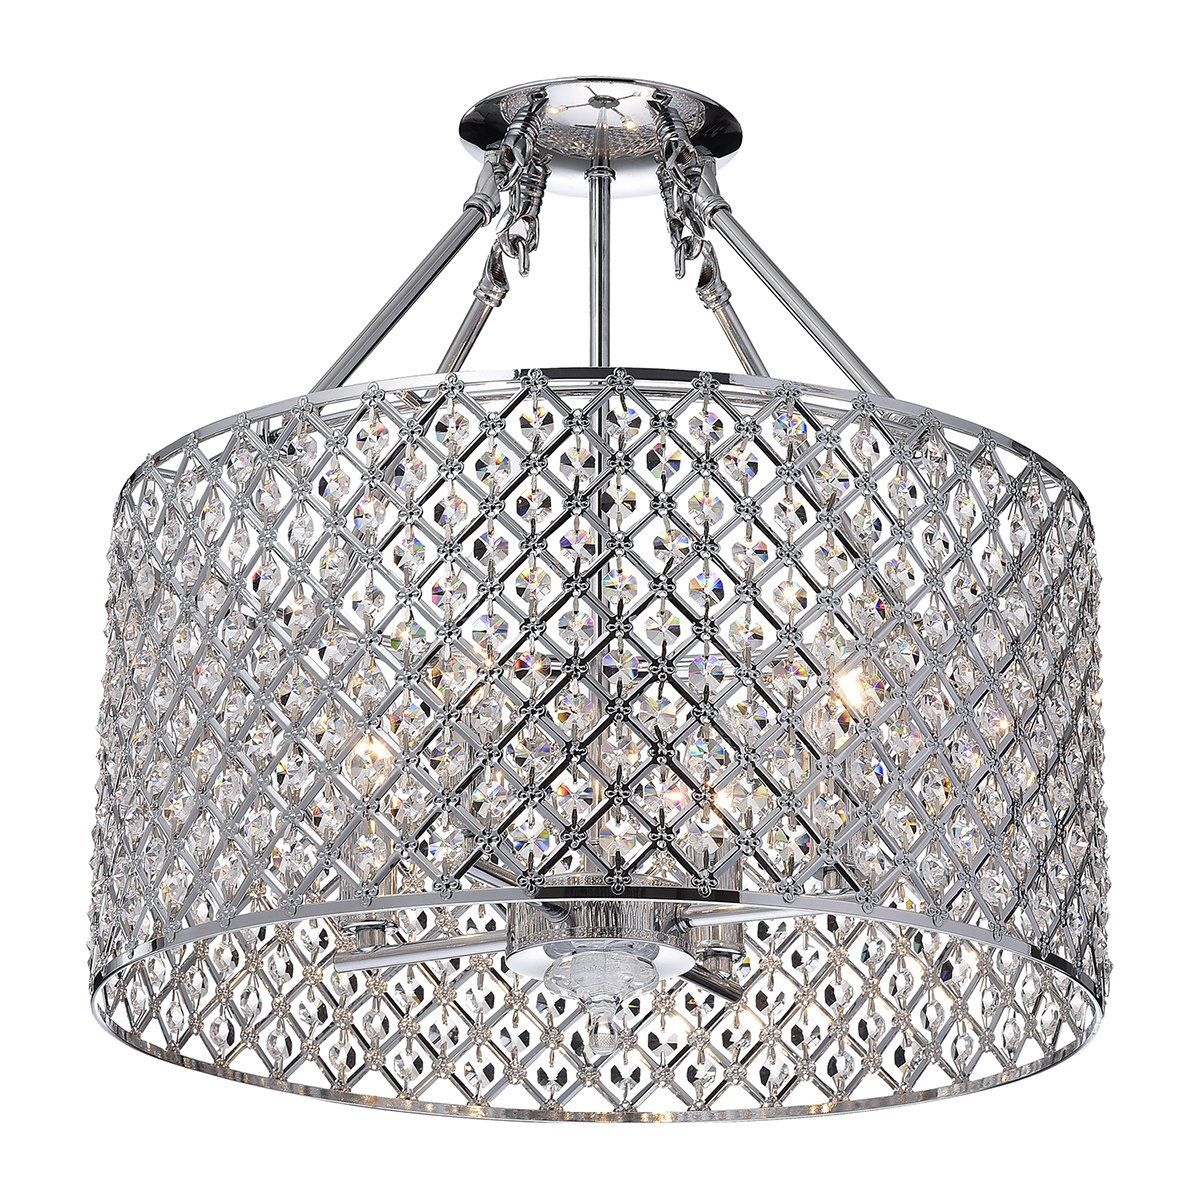 Edvivi esg802ch marya 4 light drum semi flush mount crystal edvivi esg802ch marya 4 light drum semi flush mount crystal chandelier chrome finish round arubaitofo Choice Image